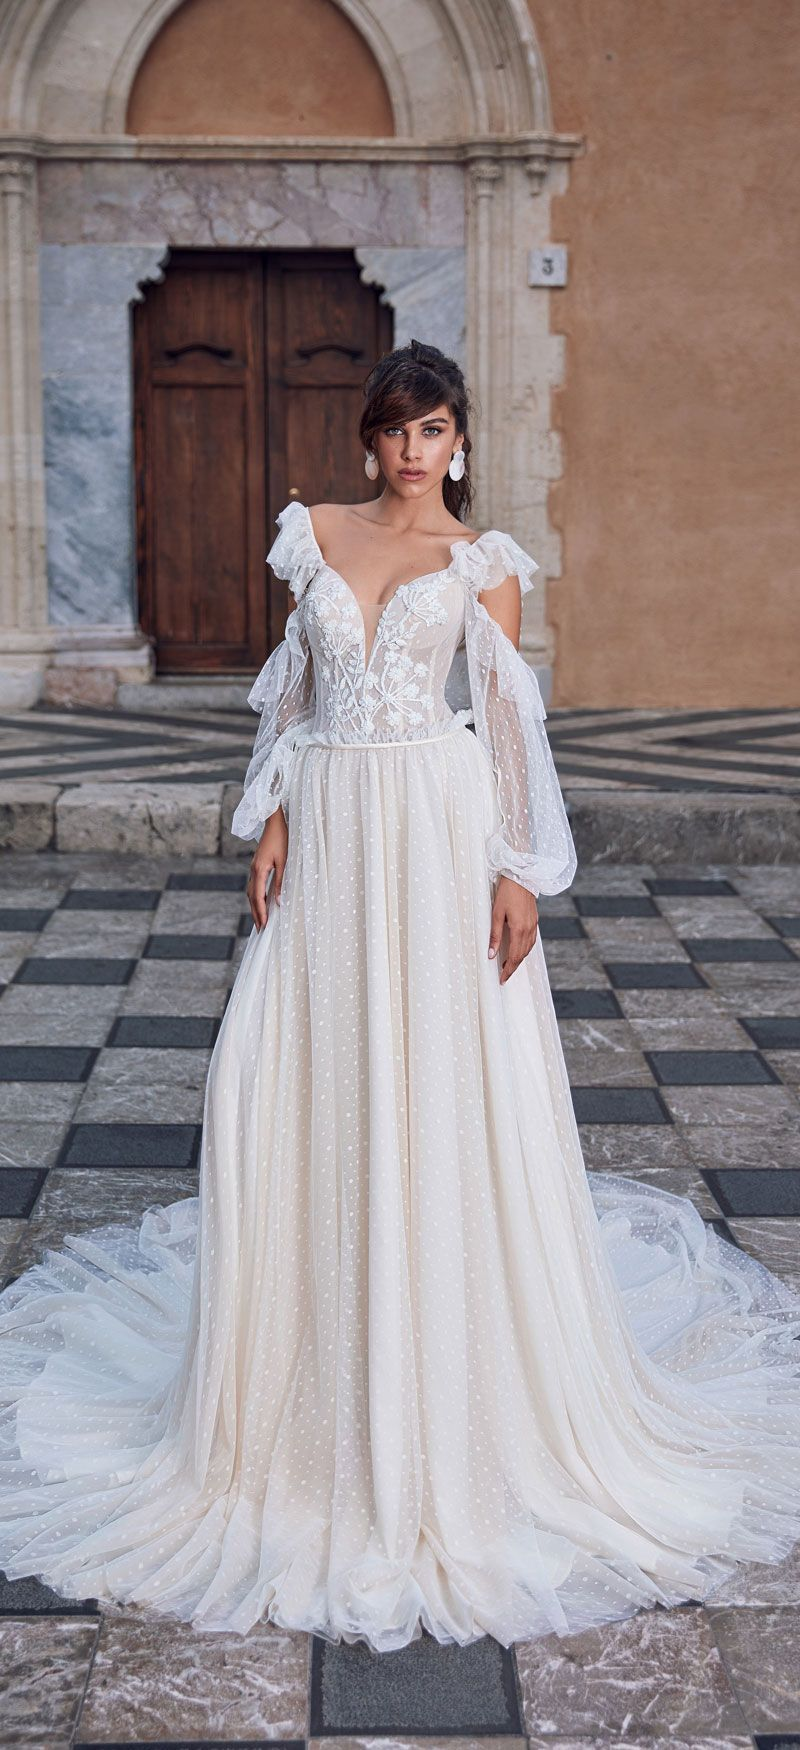 Gorgeous long sleeve wedding dresses for darling brides